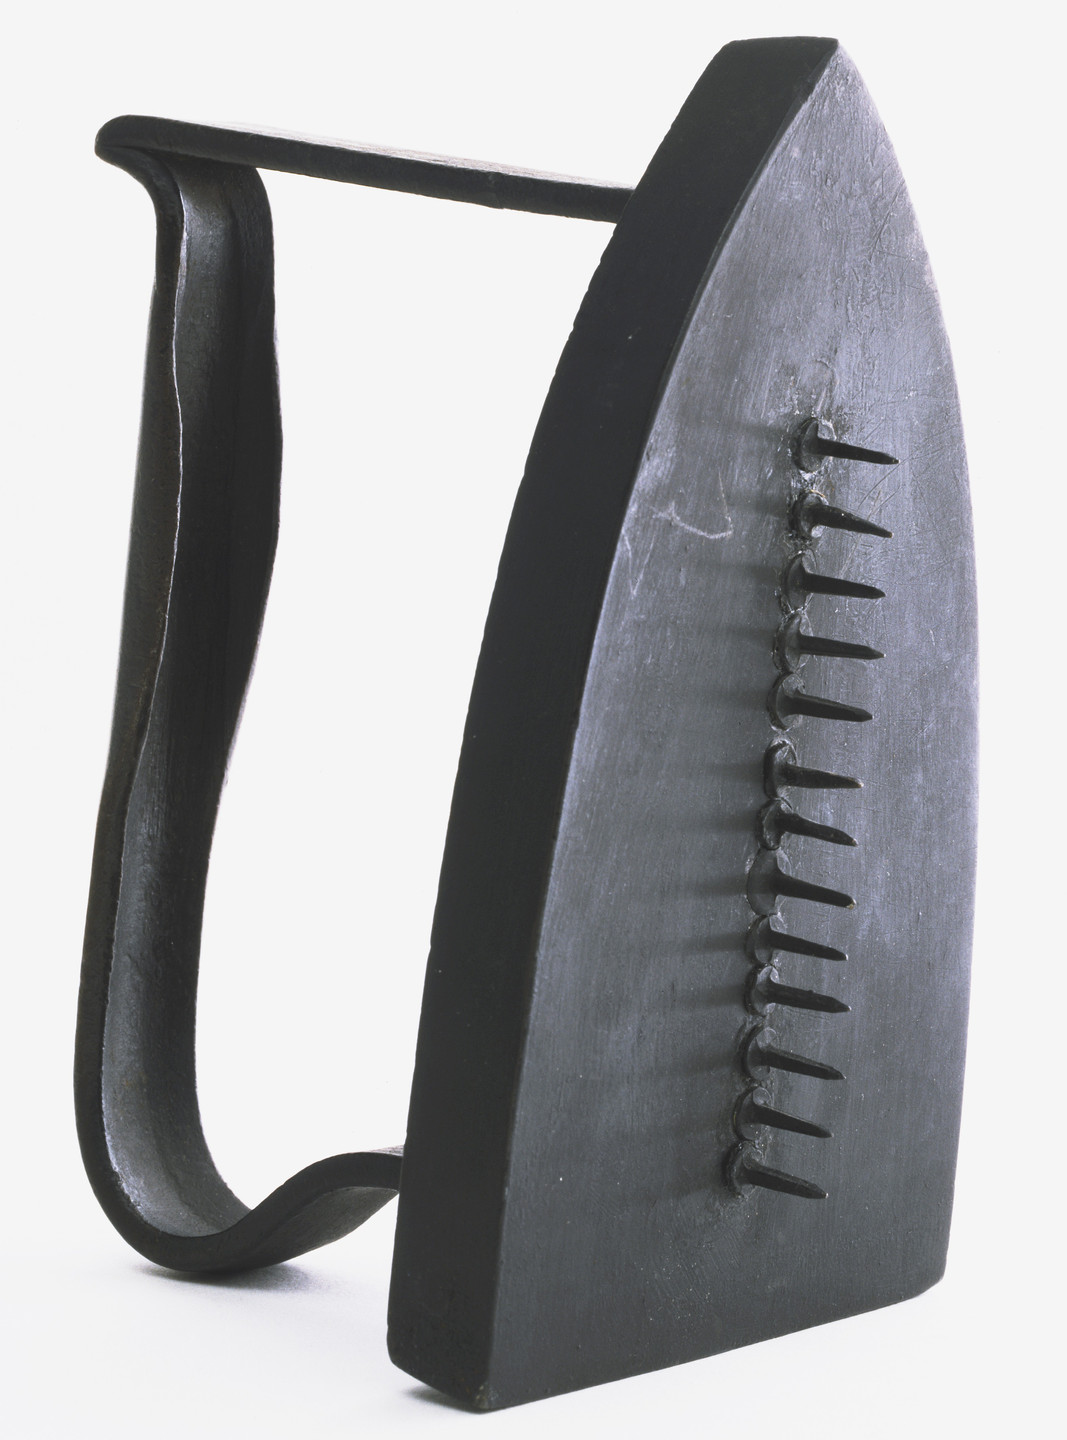 Man Ray (Emmanuel Radnitzky). Gift. c. 1958 (replica of 1921 original)